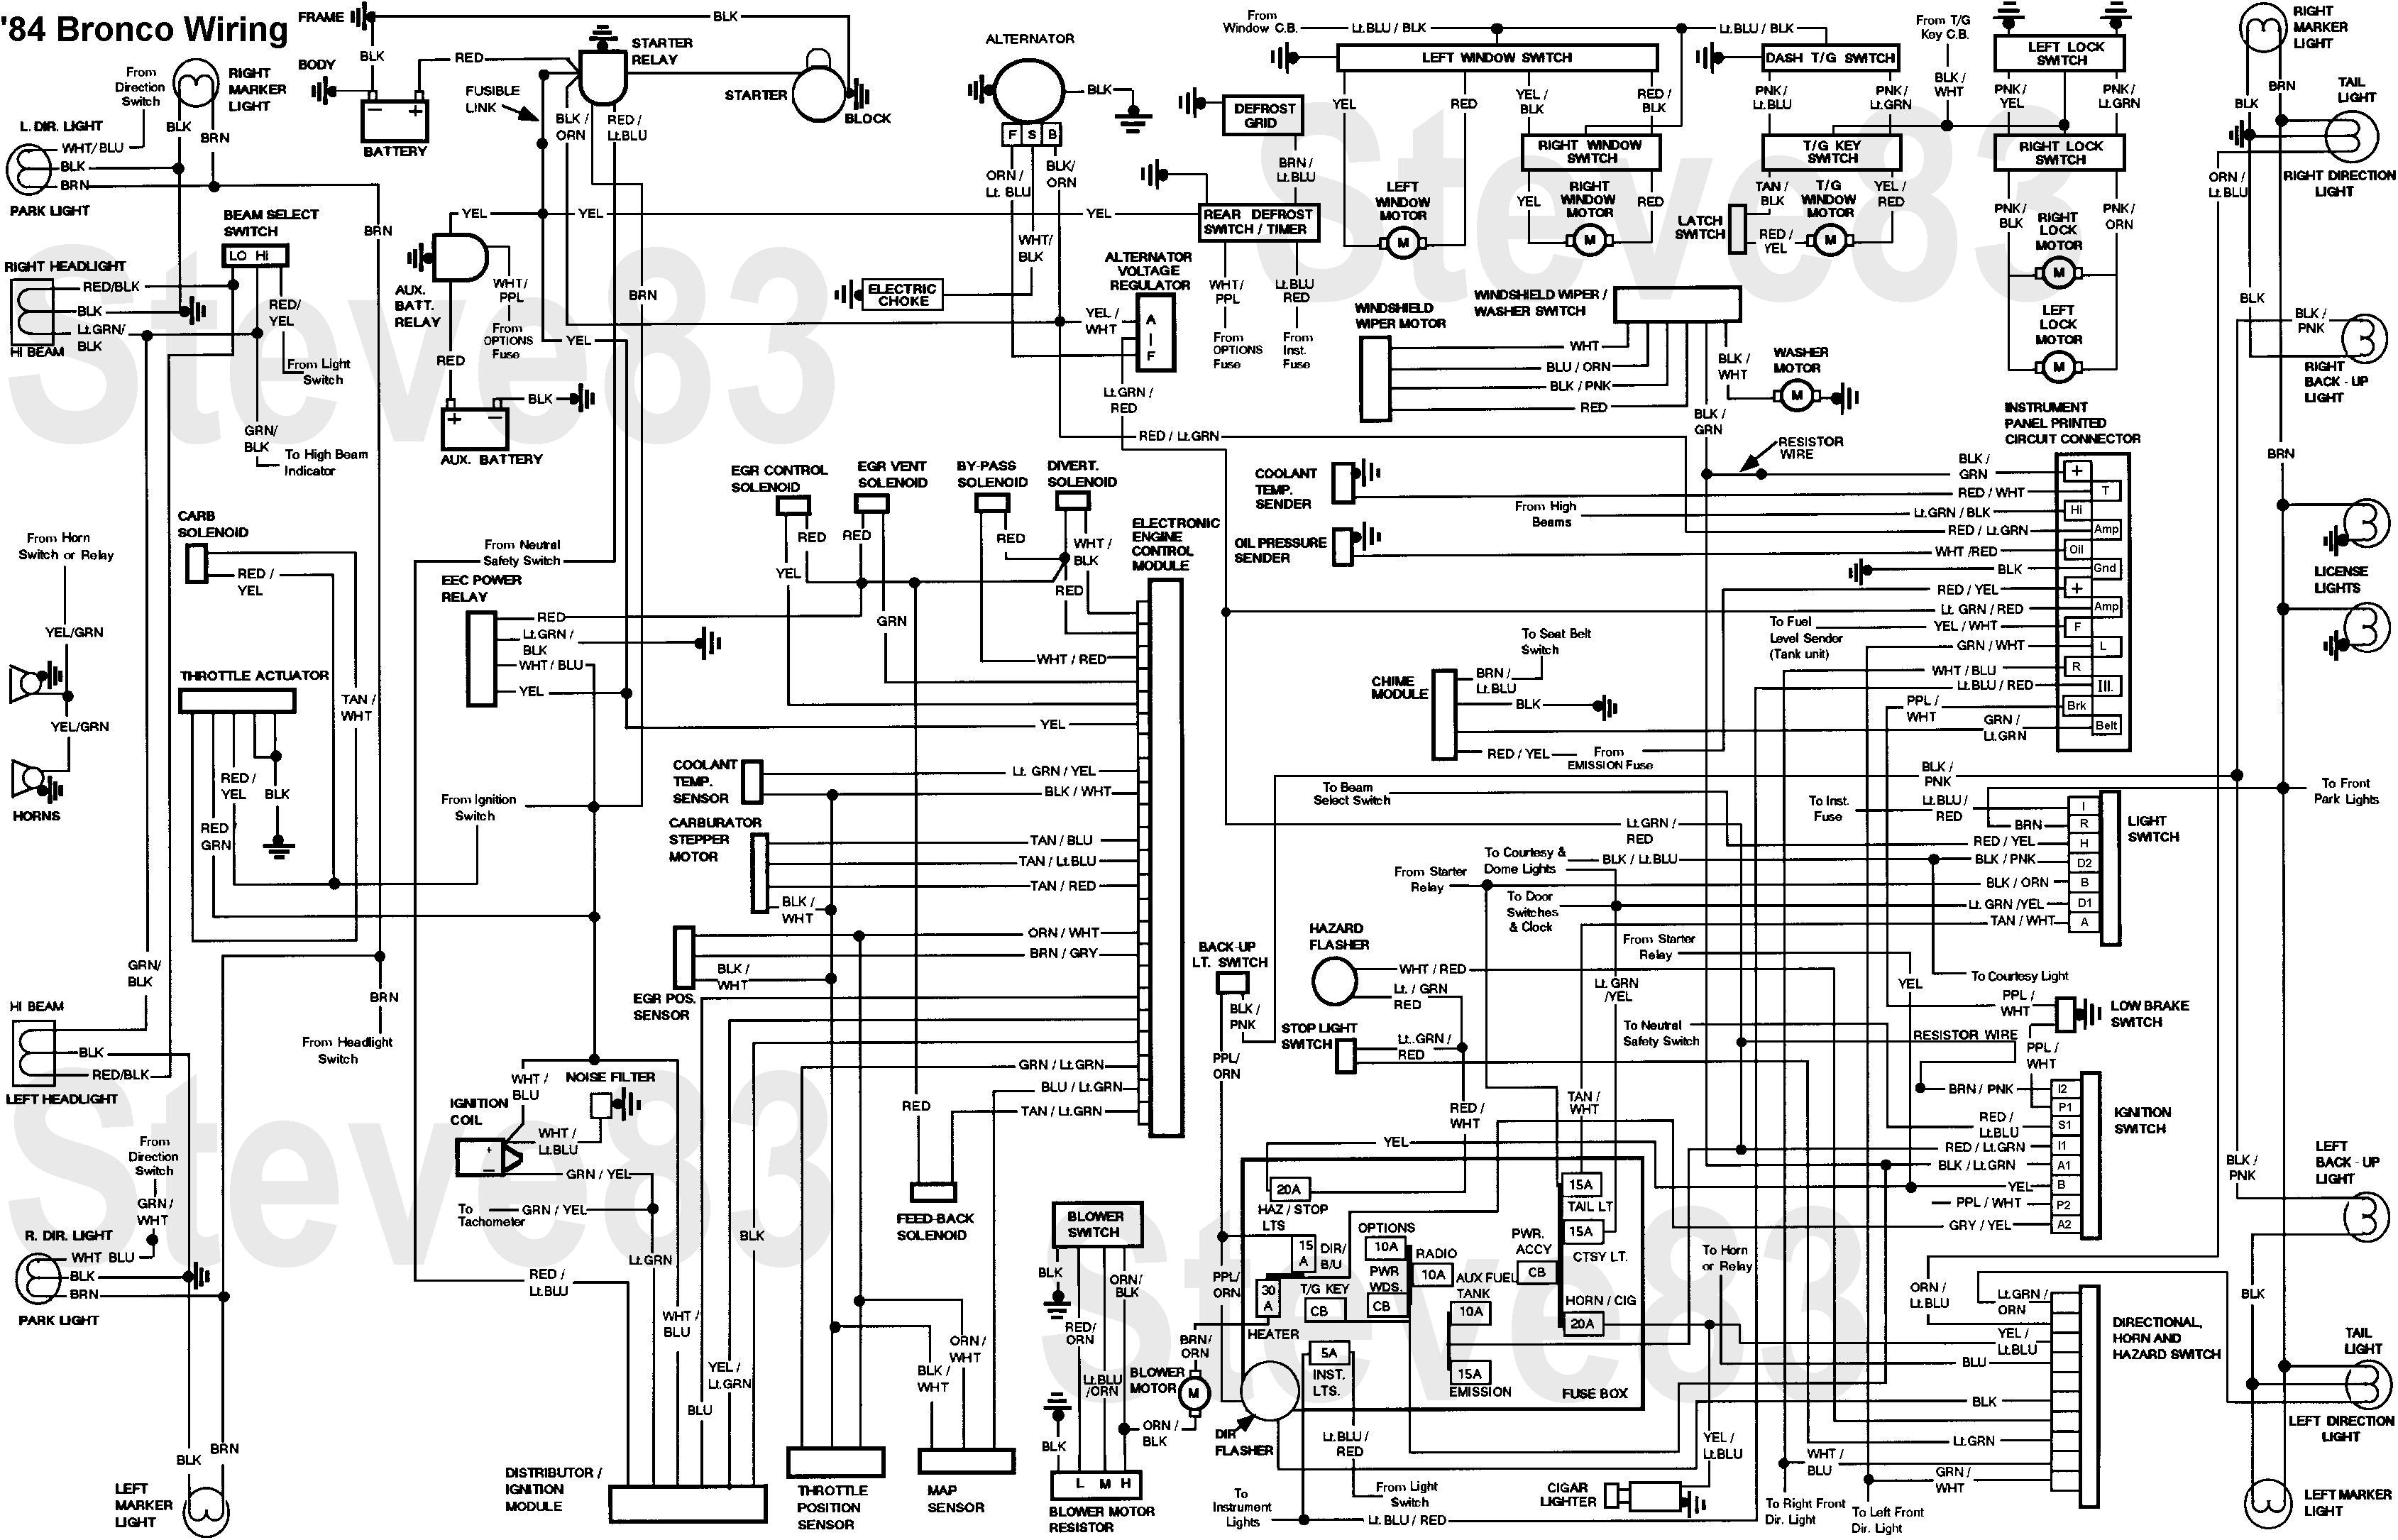 1989 Ford Bronco Wiring Diagram from www.fullsizebronco.com